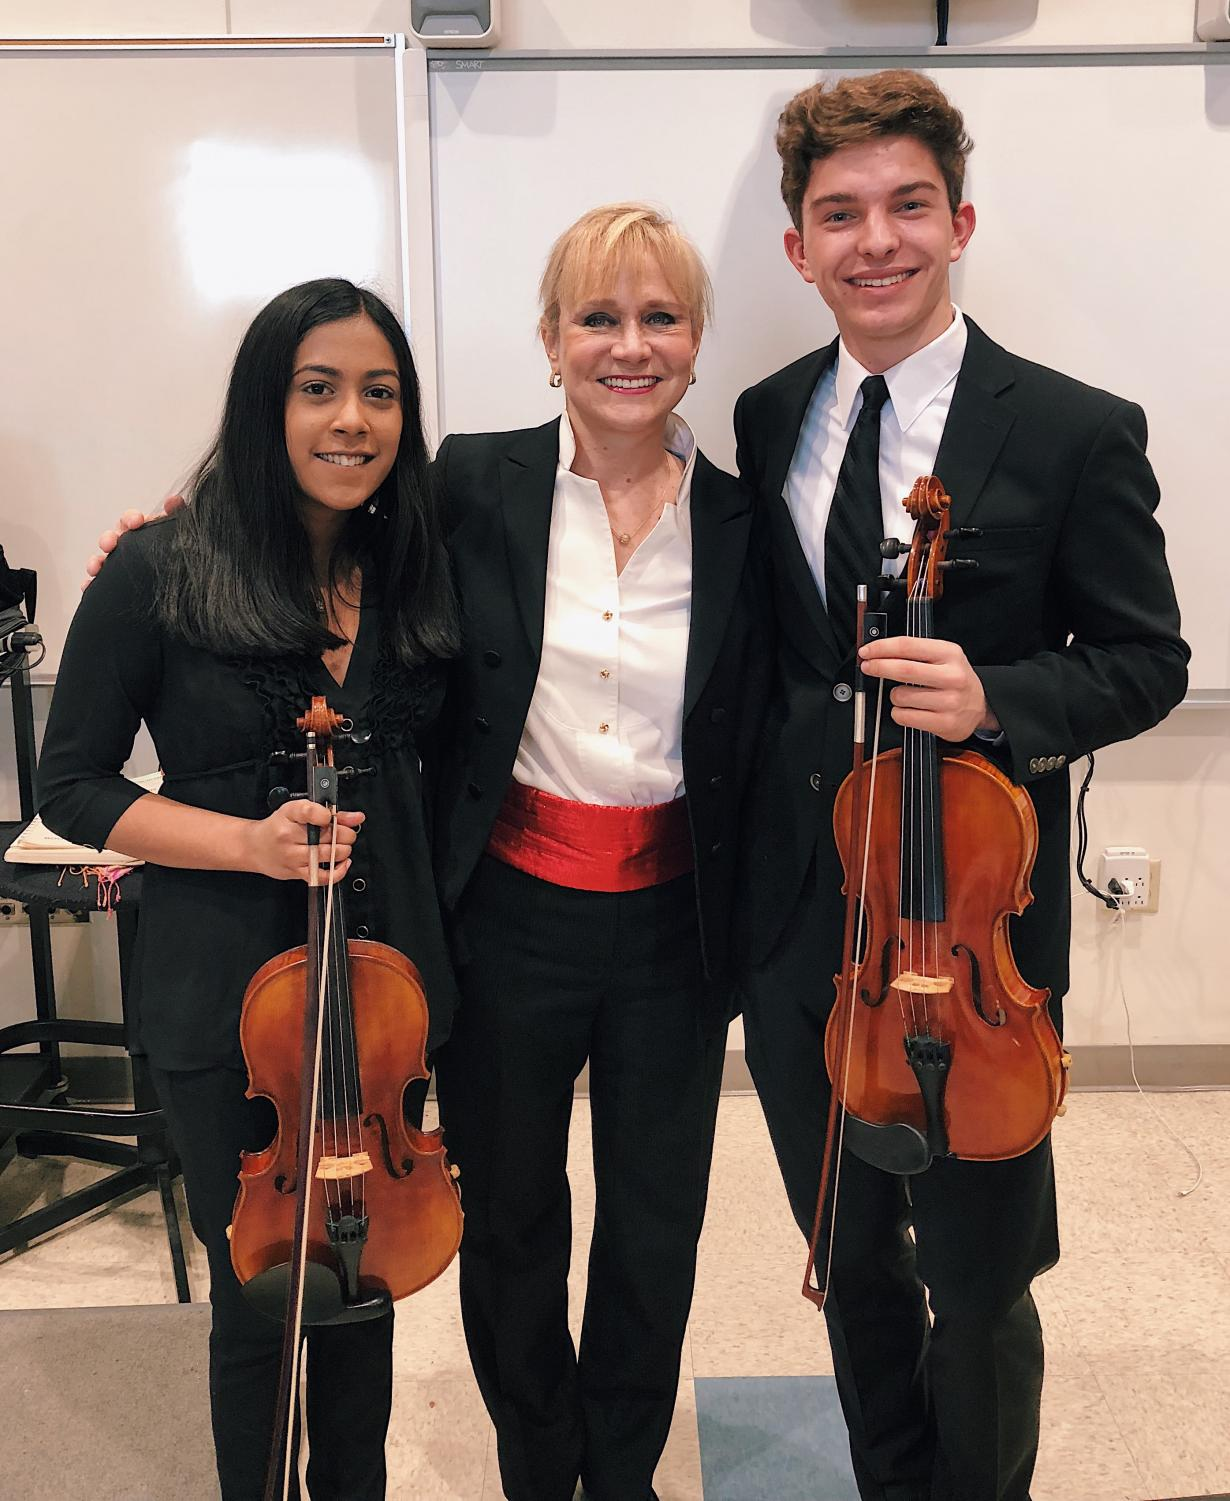 Former student Sai Manasani, conductor Ms. Burns, and Gabe Galley at NEMFA last year.